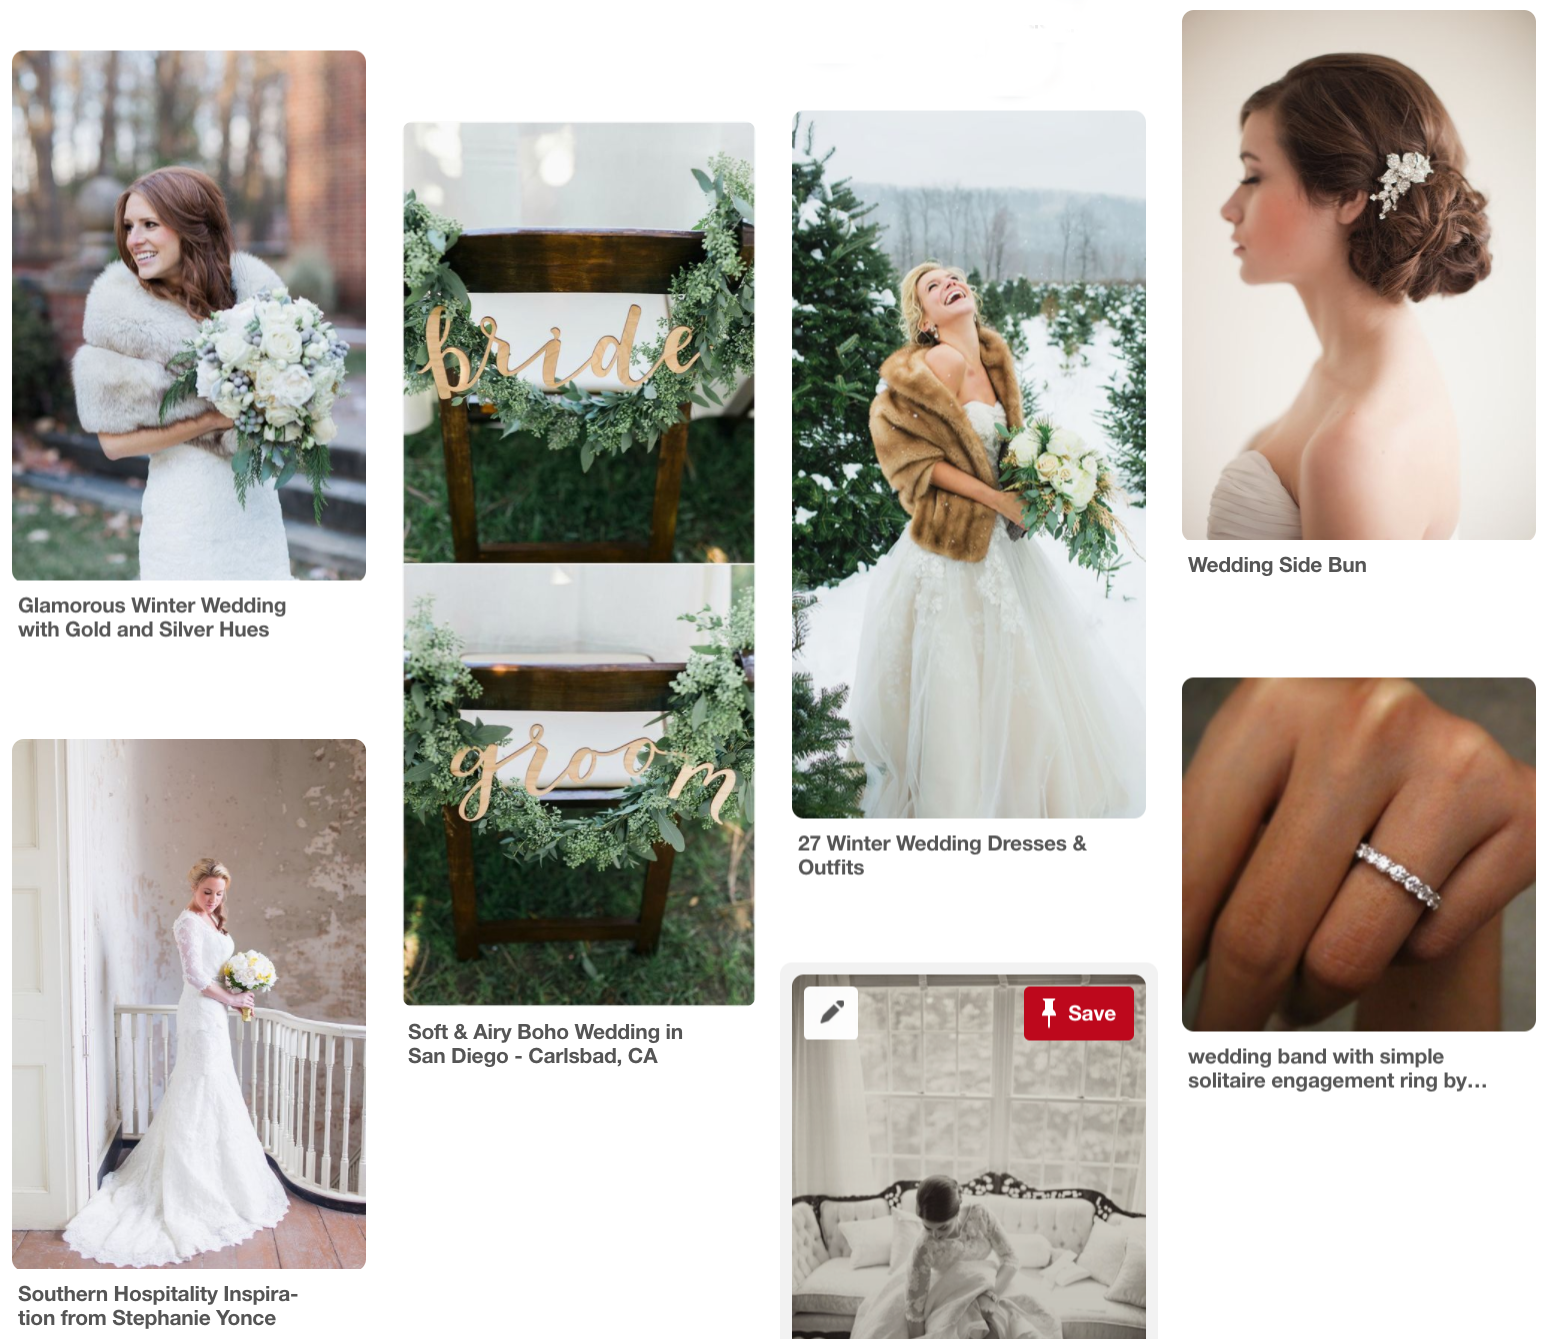 wedding inspiration - wedding pinterest board - winter wedding inspiration